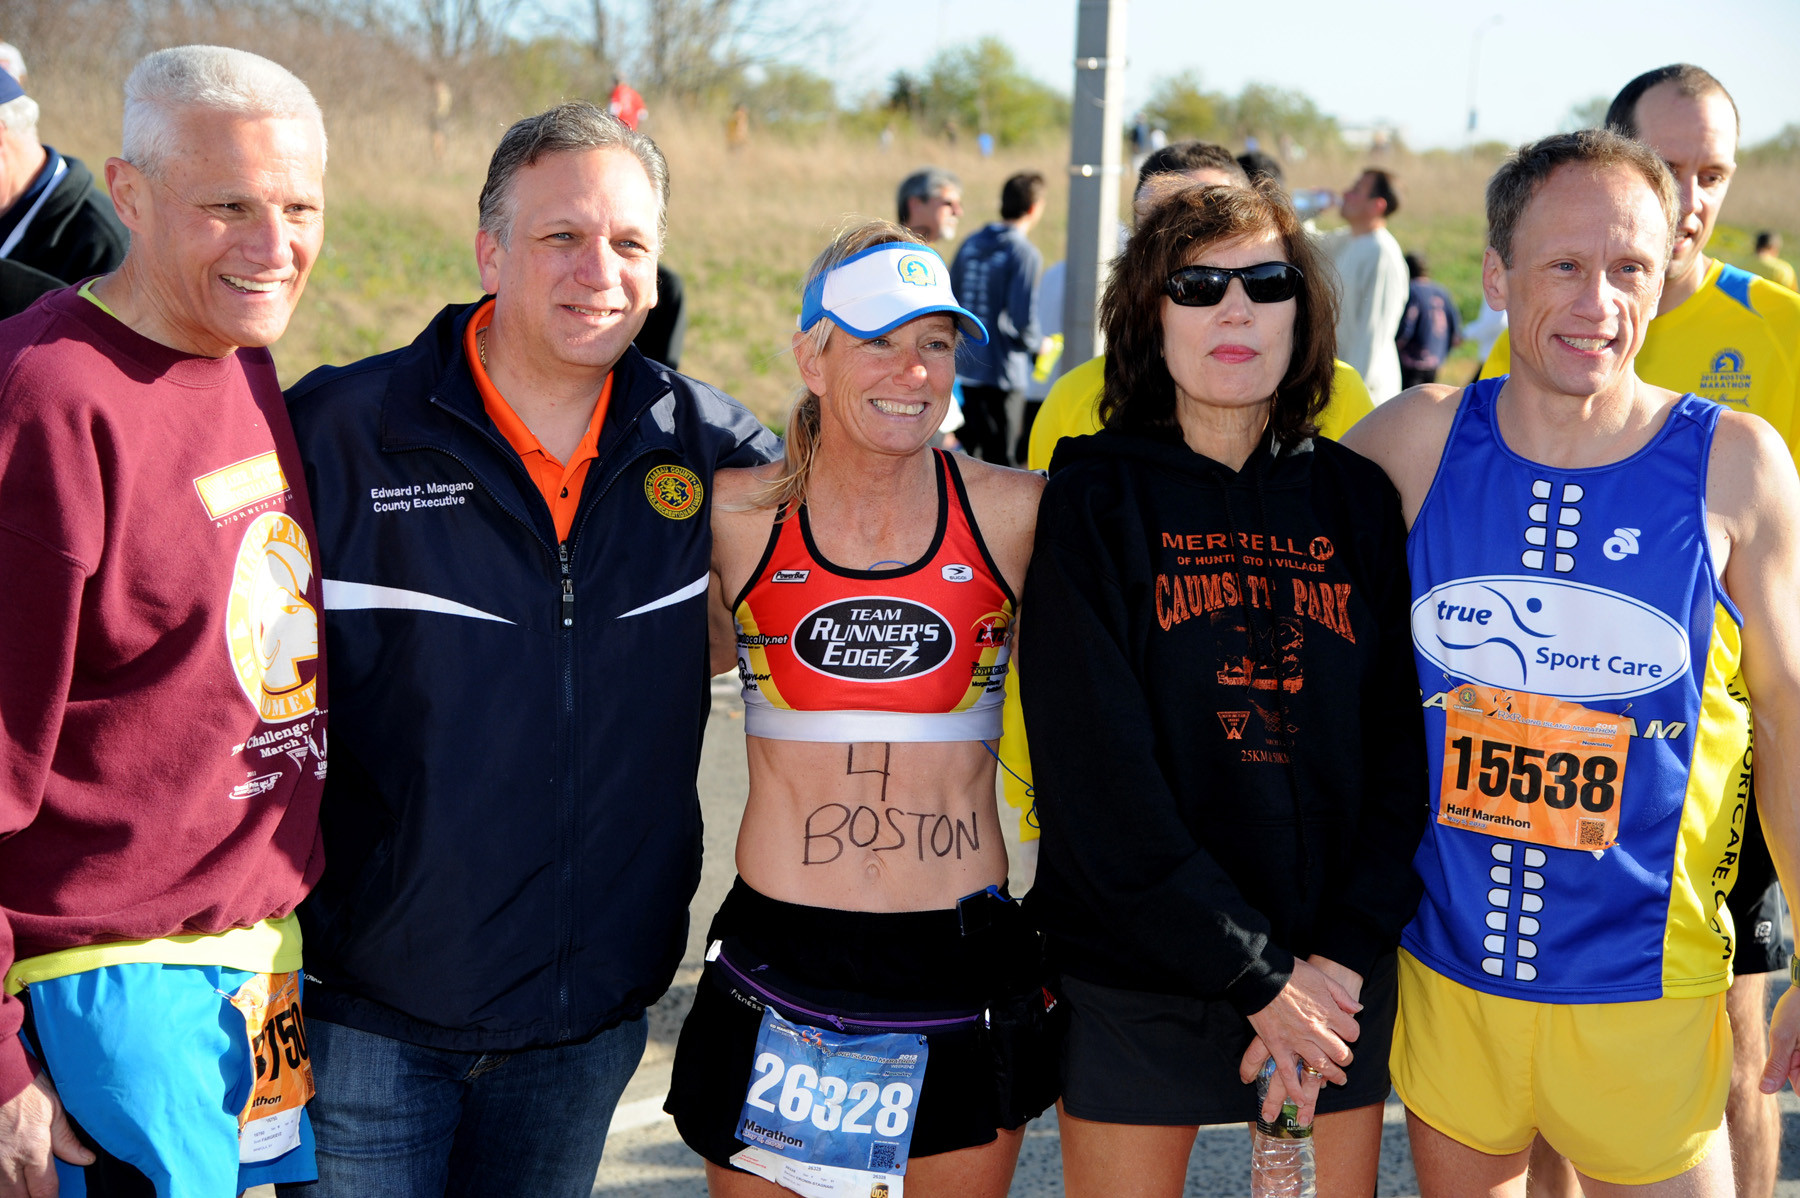 Prior to last Sunday's Long Island Marathon, a tribute was held to honor the victims of the Boston Marathon. Pictured is County Executive Ed Mangano, second from left, with runners who participated in the Boston race, including, from left, Scott Fairgrieve, Barbara Cronin, Linda Ottaviano and Will Widman.